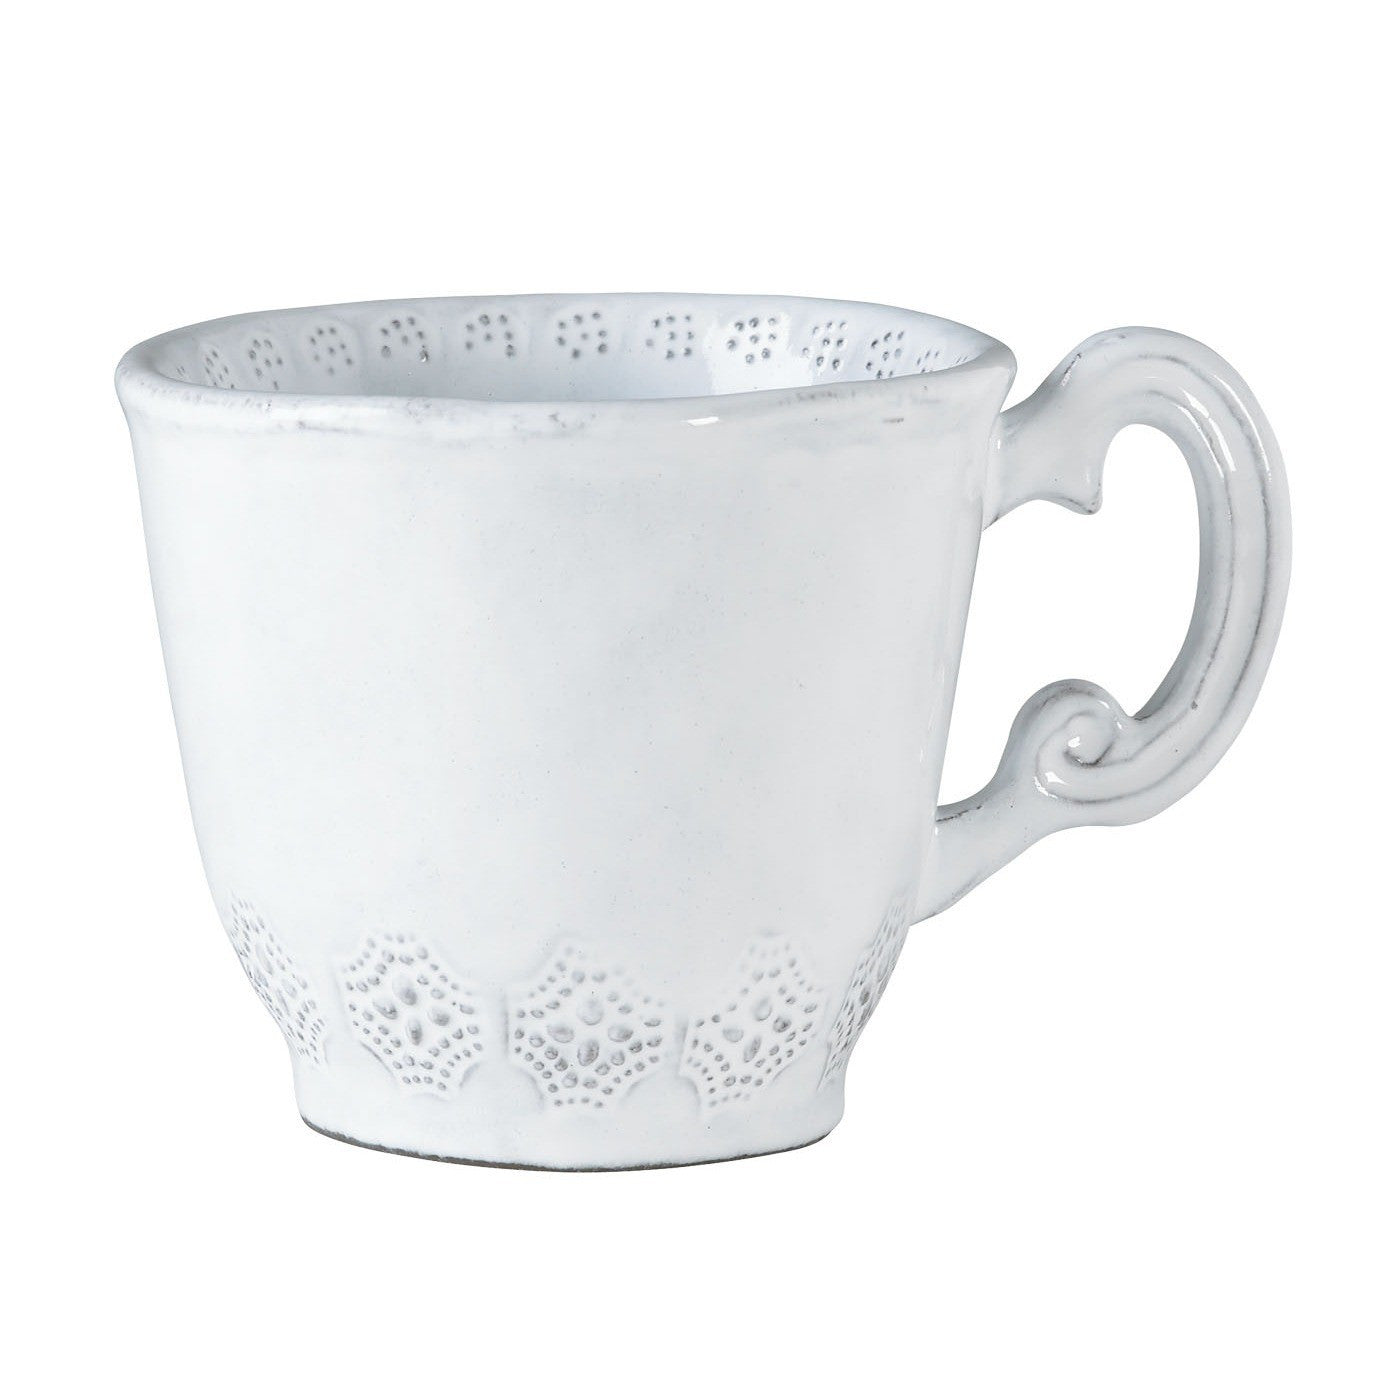 Incanto Lace Mug - Set of 4 , tableware - Vietri, Pezzo Bello  - 1